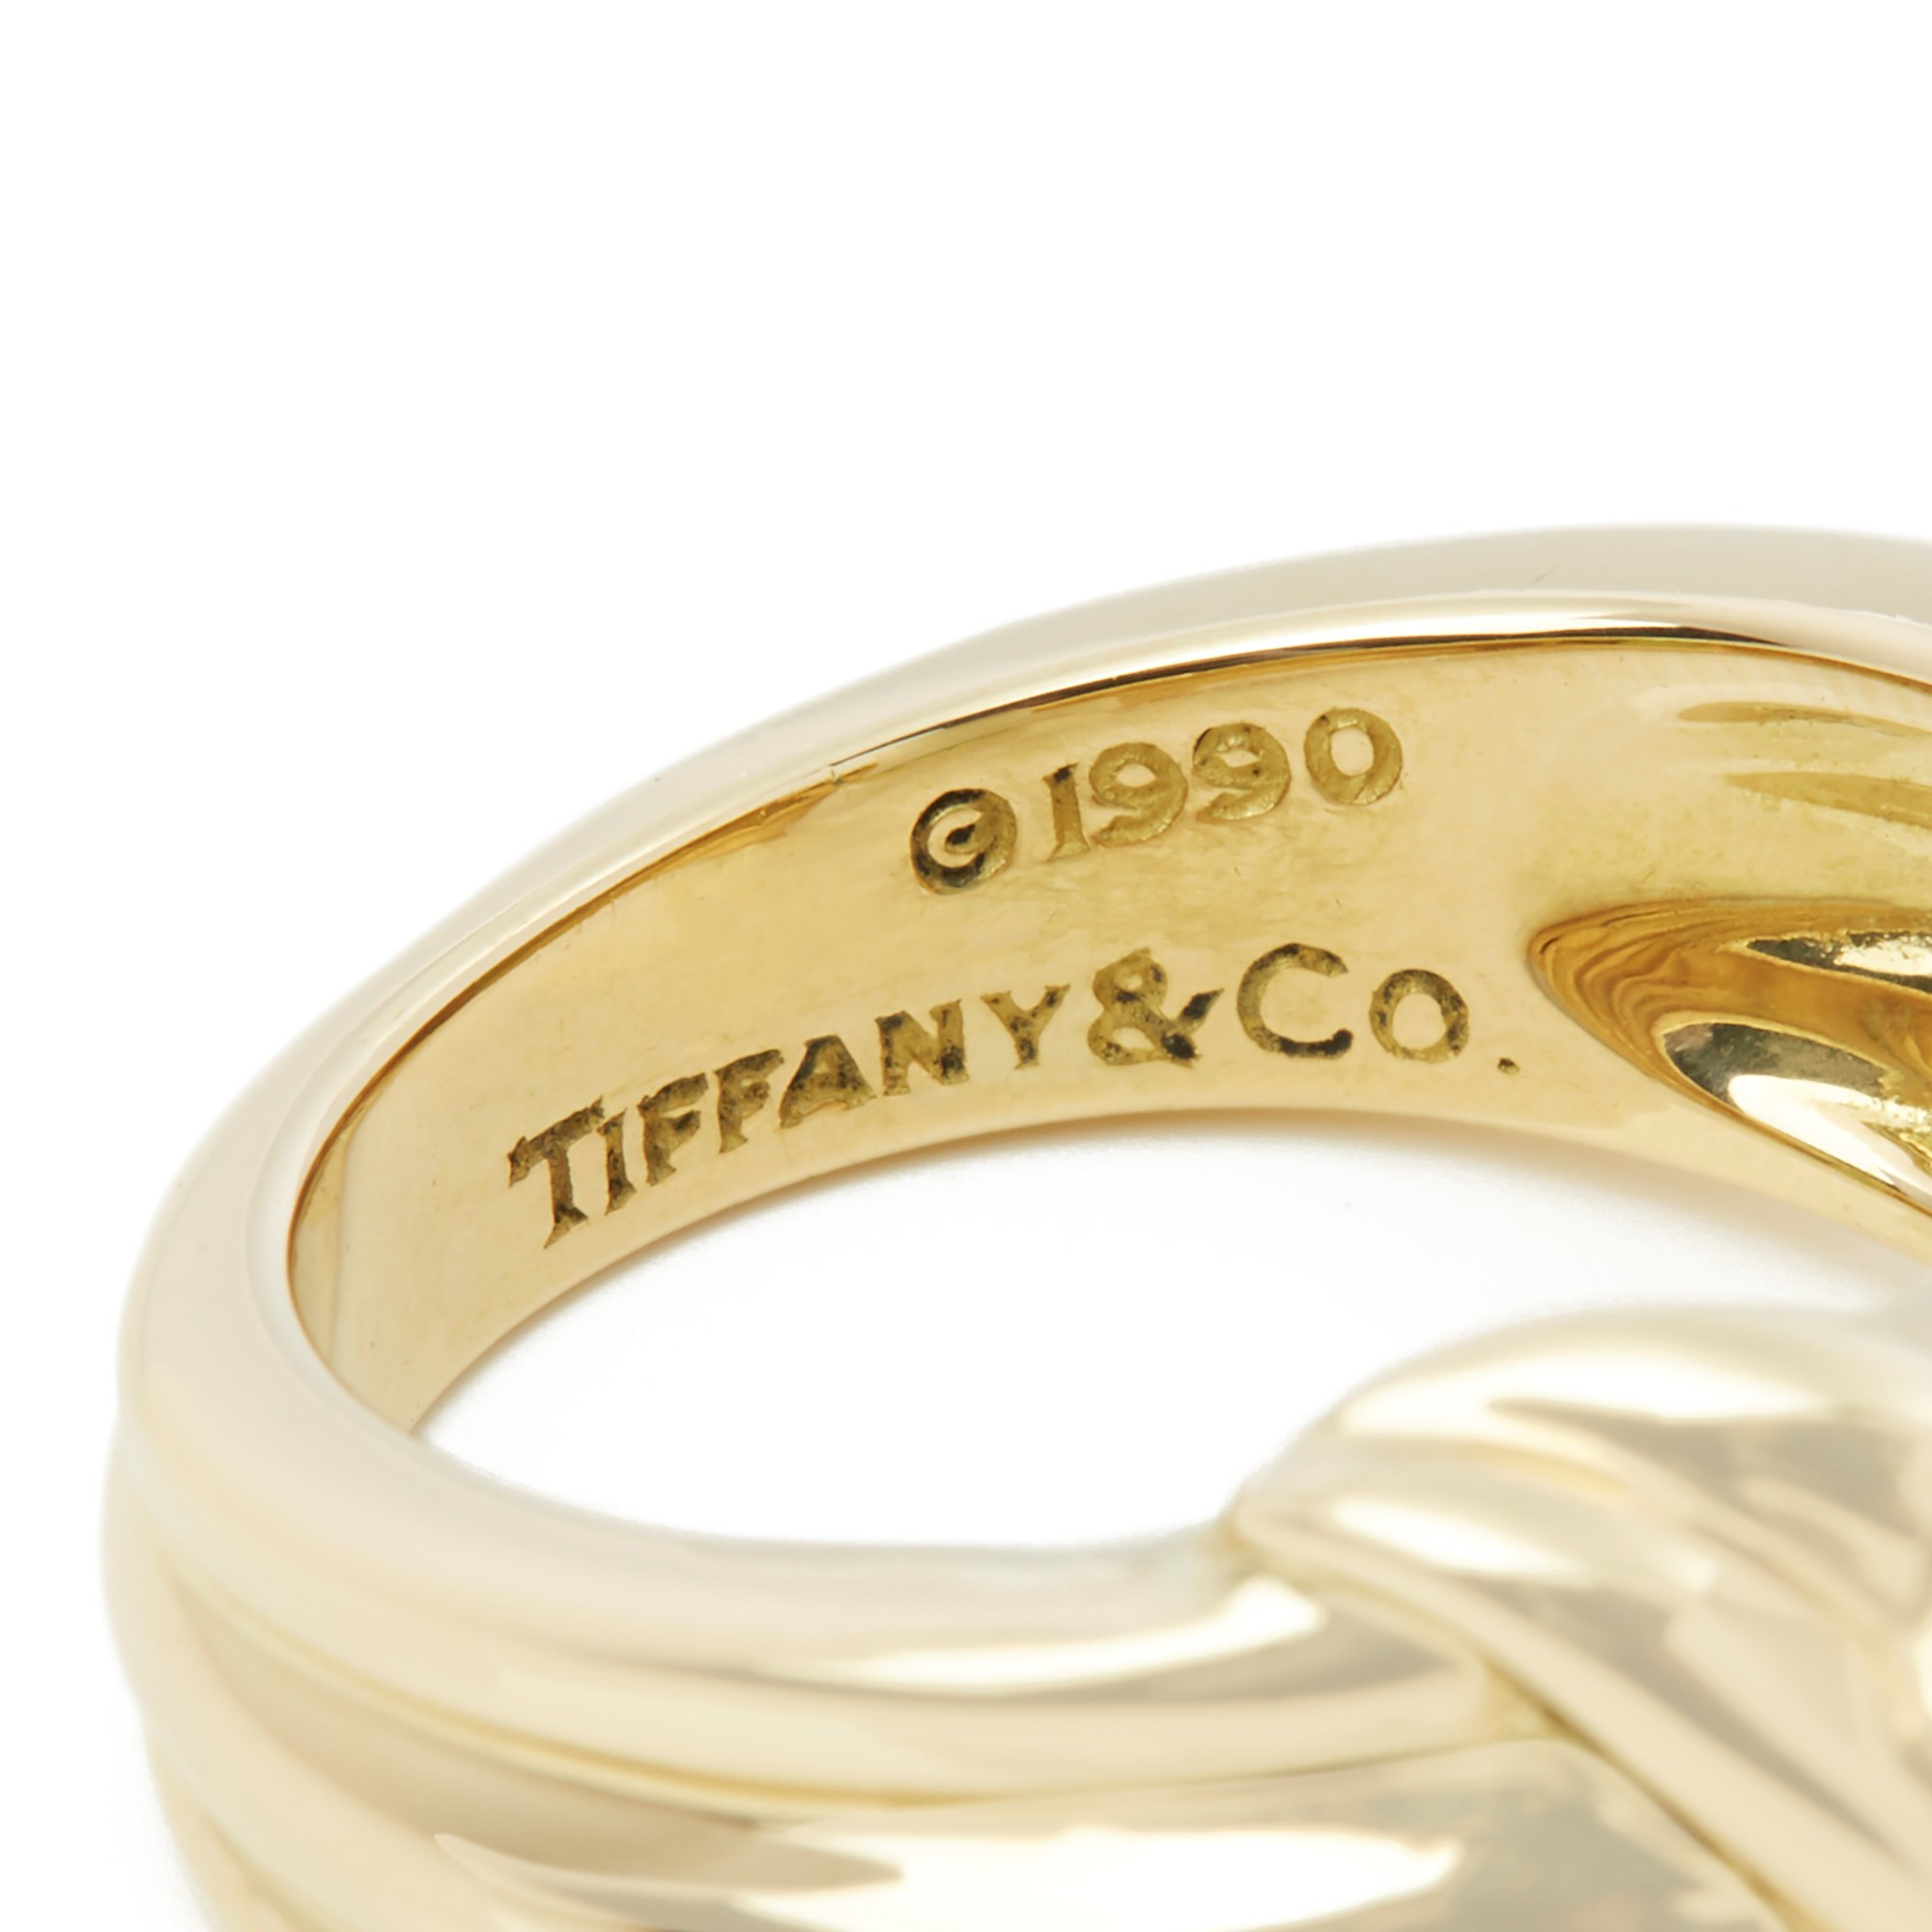 Tiffany & Co. 18k Yellow Gold Colombian Emerald Cocktail Ring